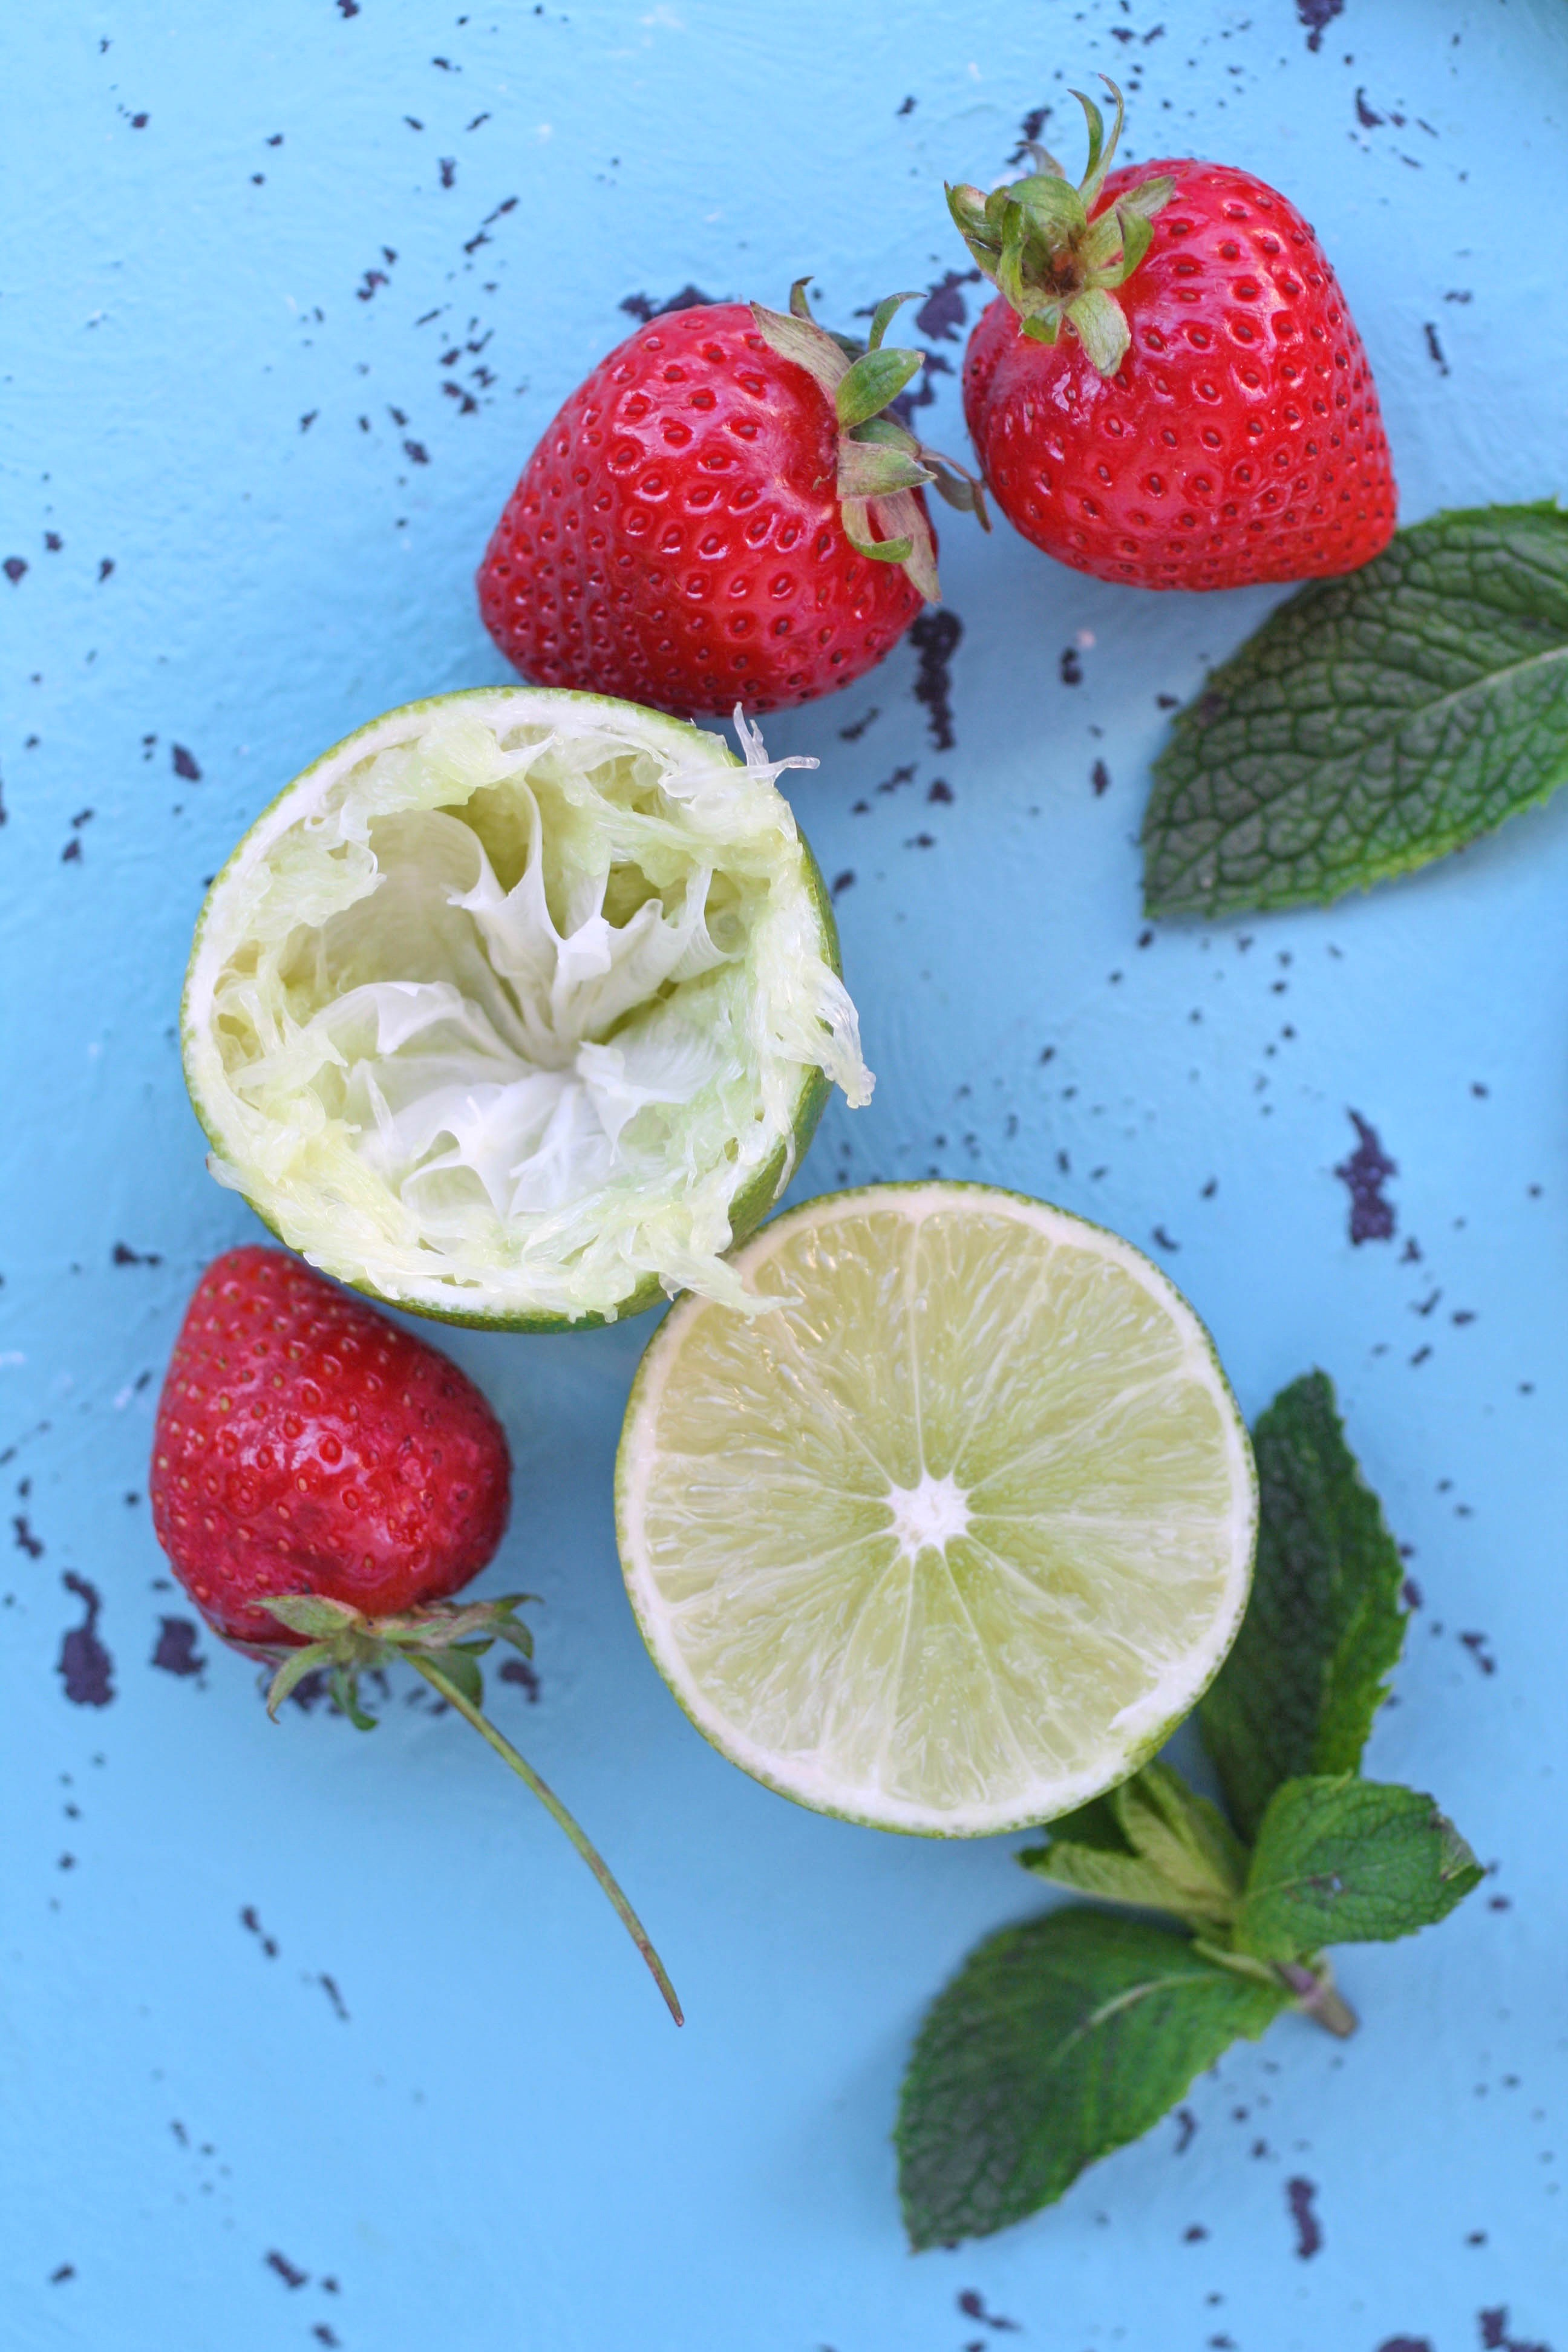 Strawberry-Mint Agua Fresca is a drink you'll want for the warm weather. It's a delight!